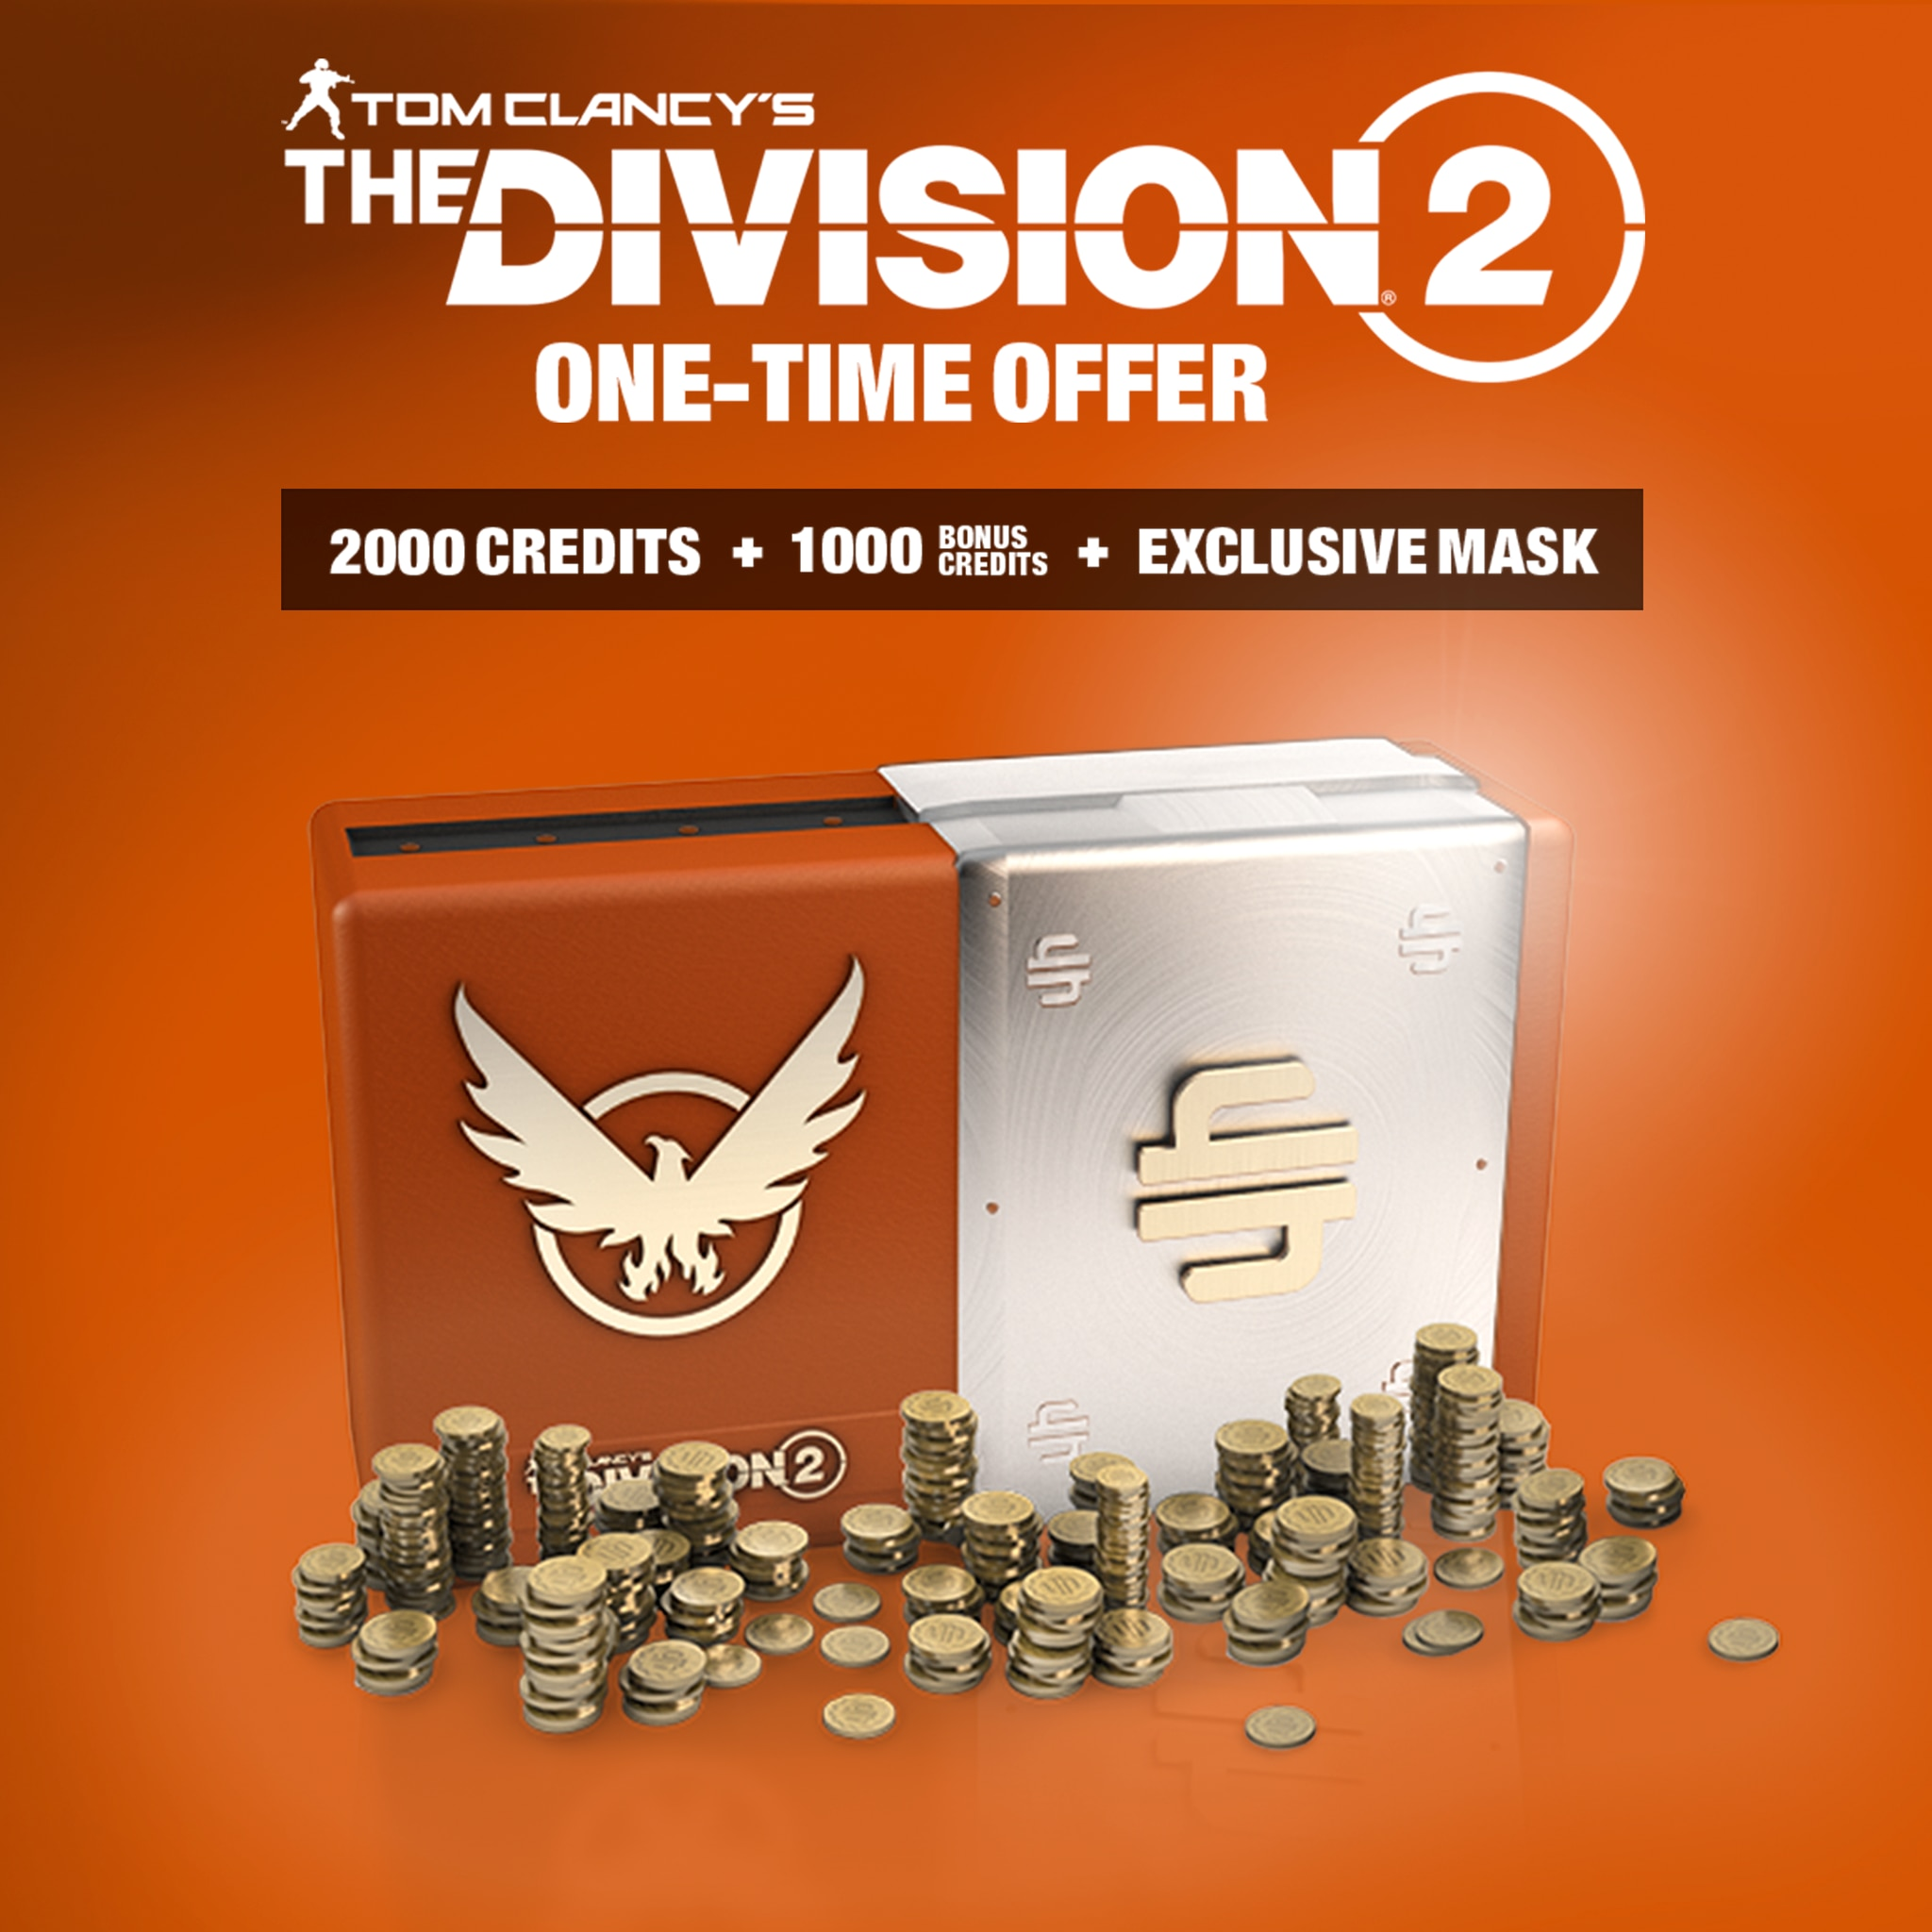 The Division 2 – One-Time Offer Pack